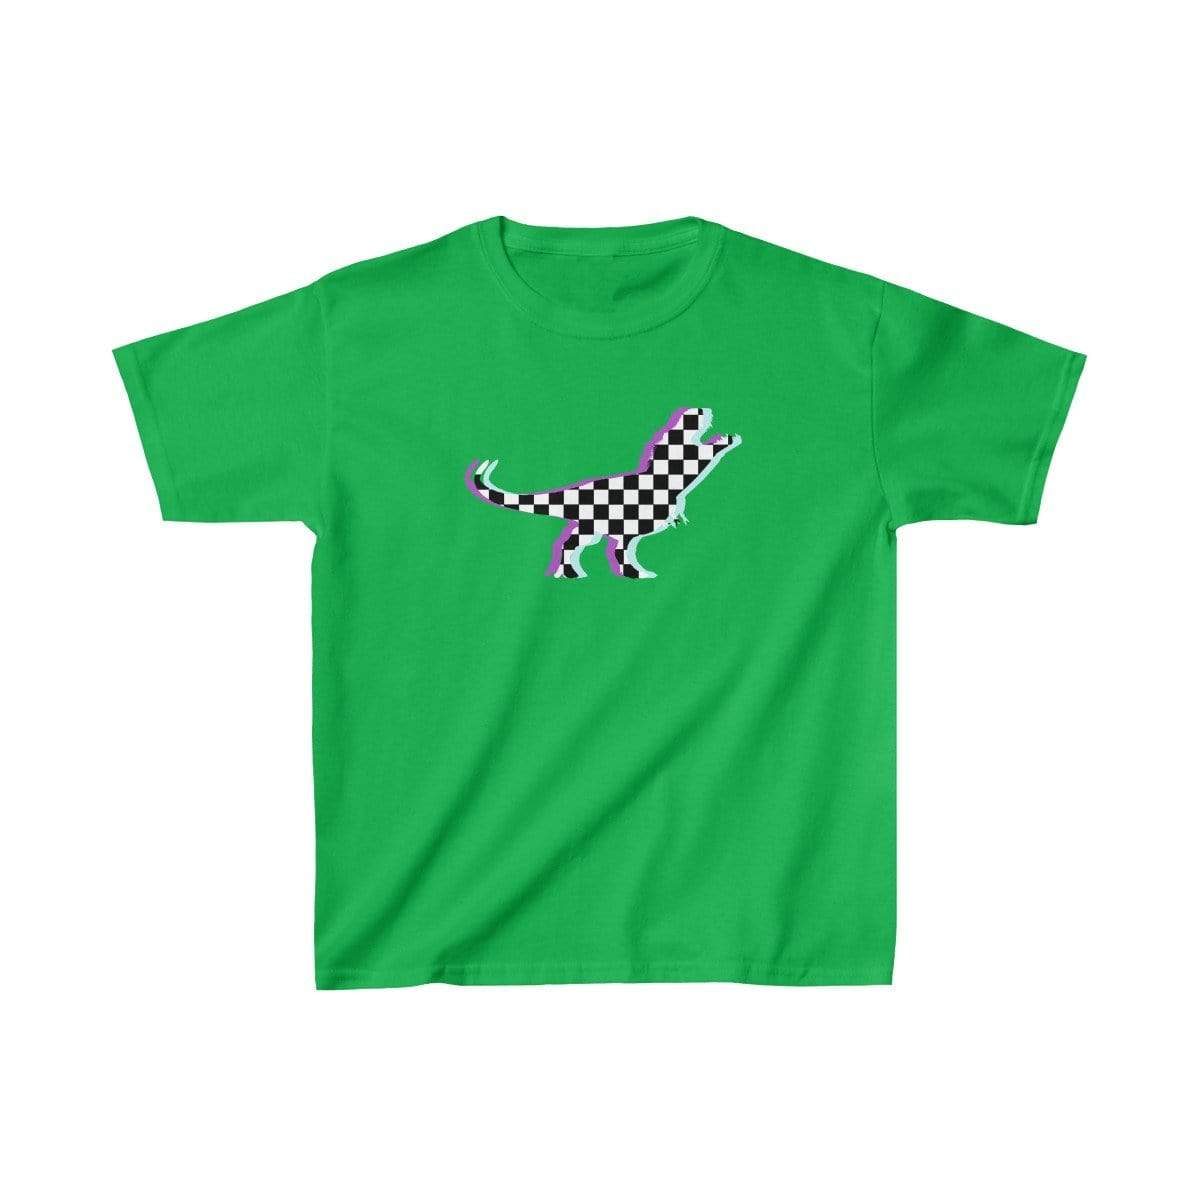 Printify Kids clothes Irish Green / XS Glitch Aesthetic TRex Checker T-Shirt Kids